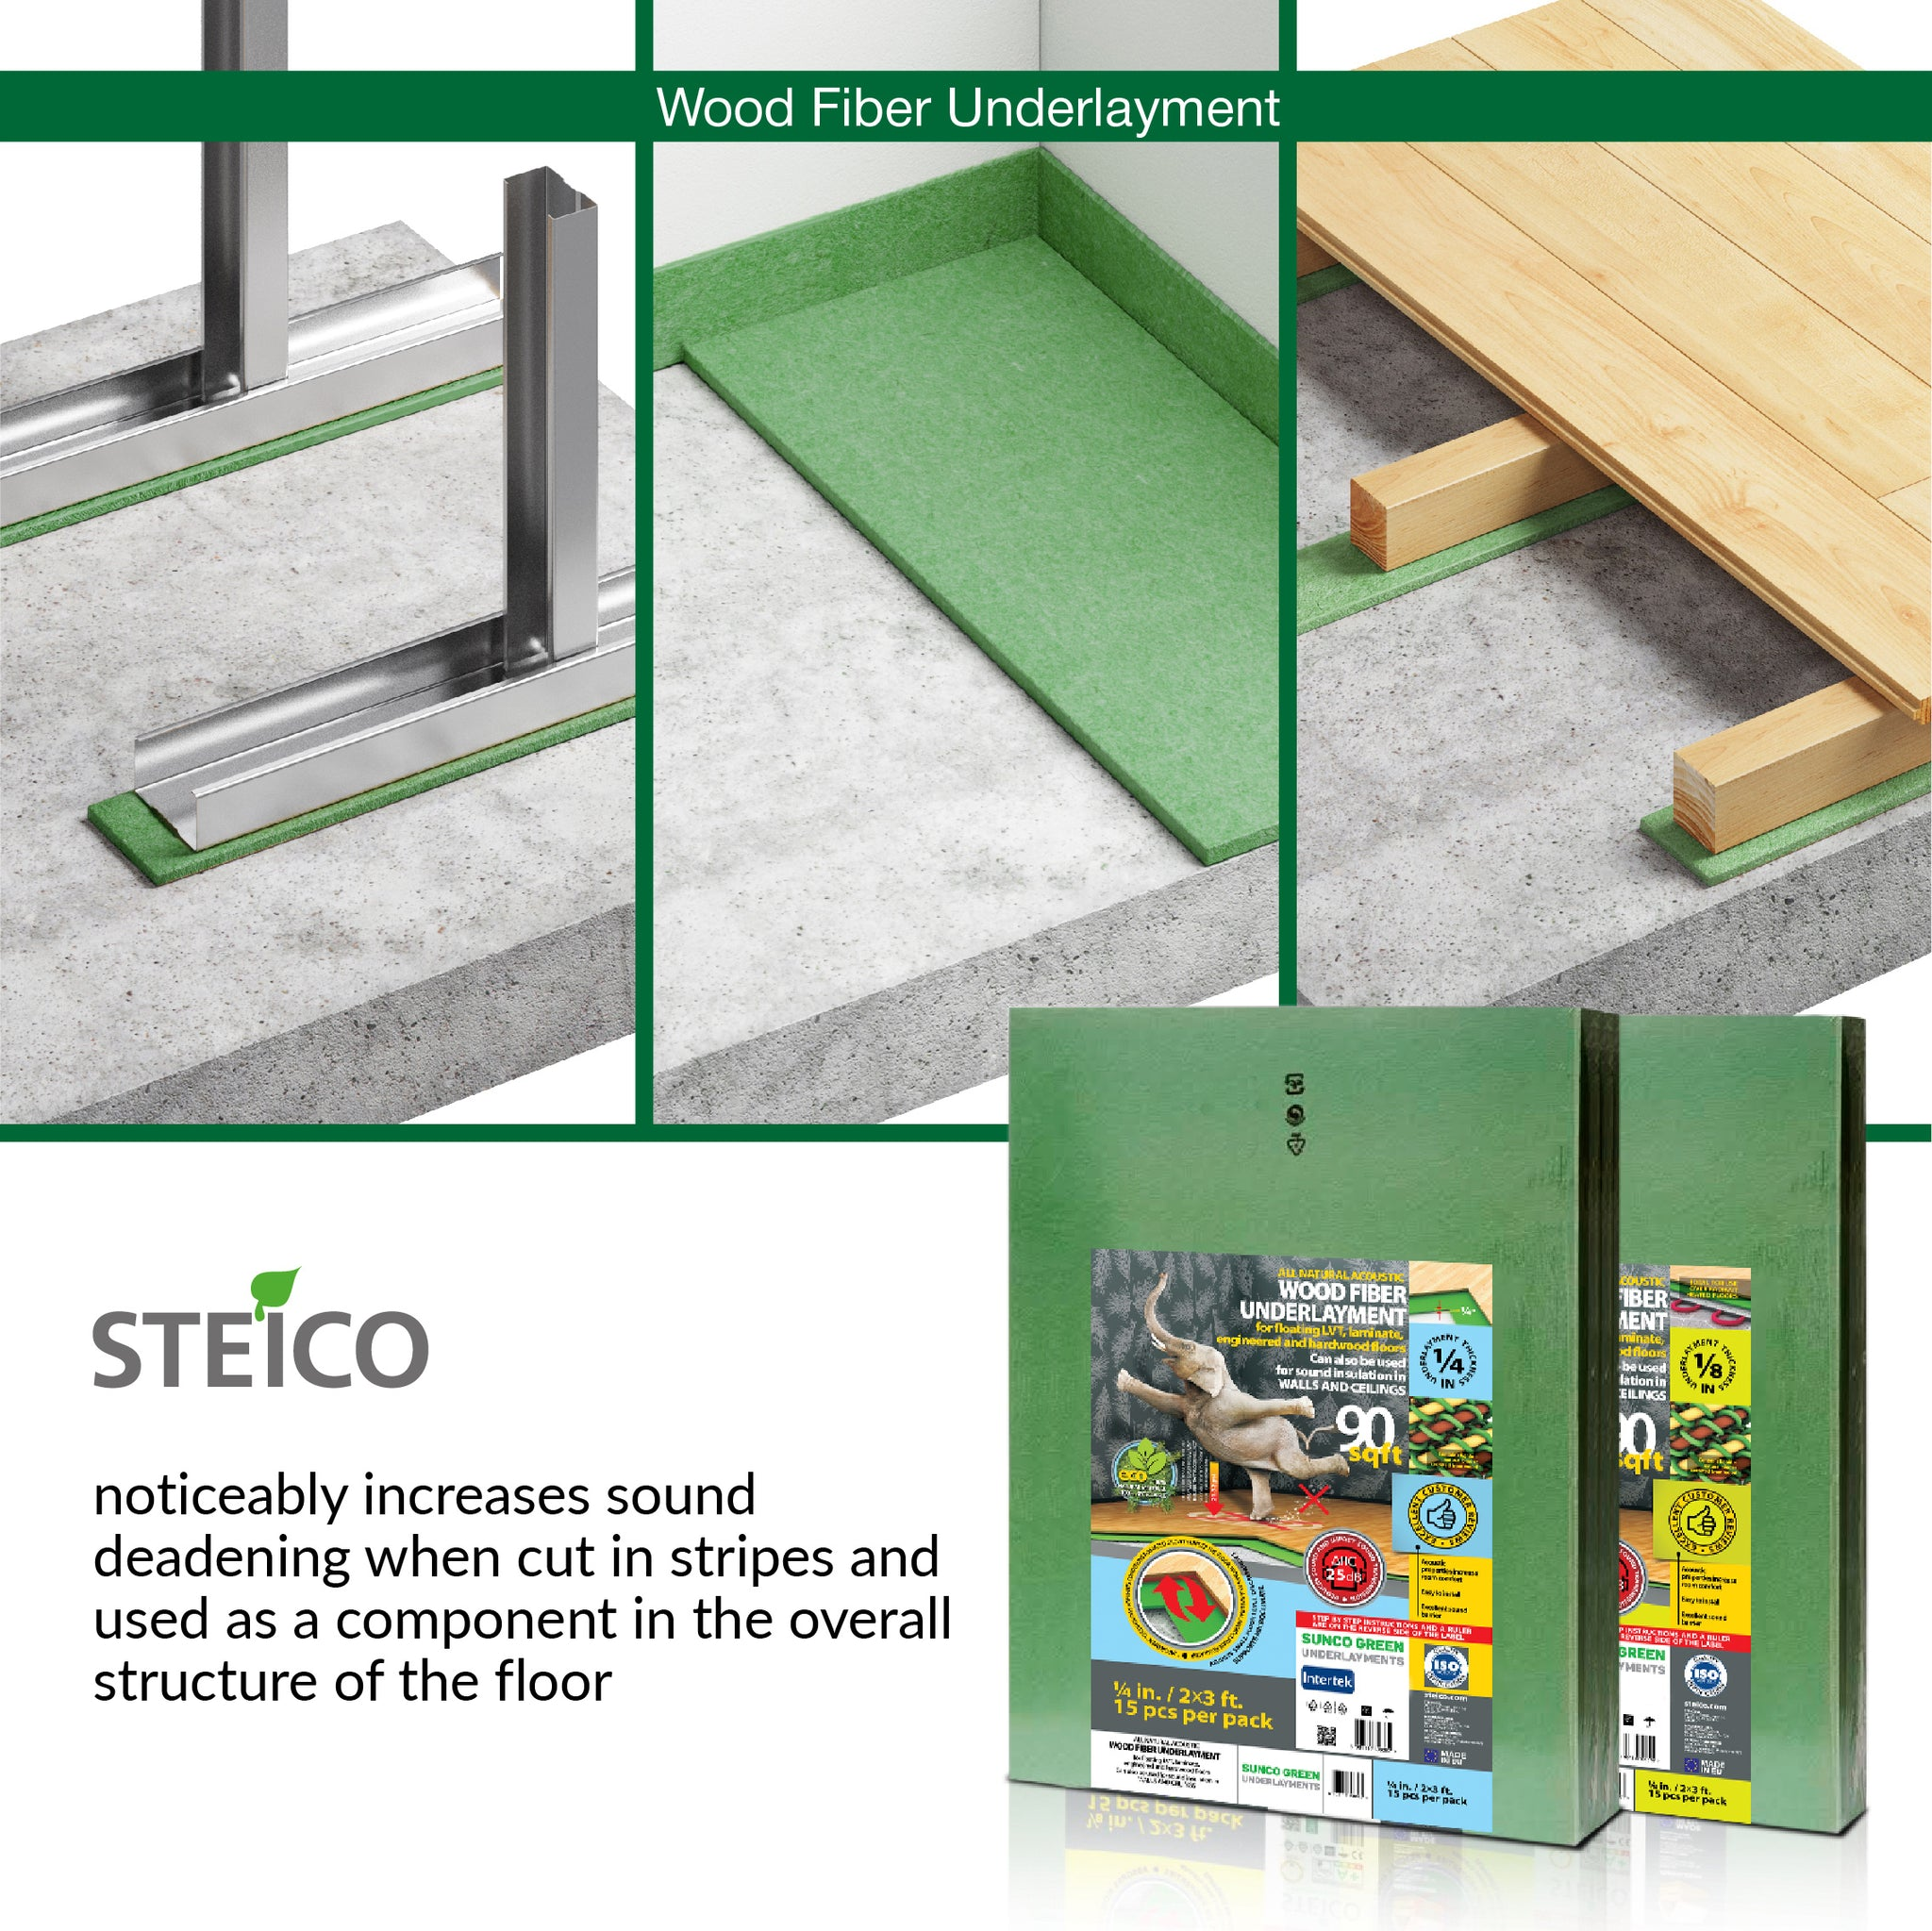 STEICO WOOD FIBER UNDERLAYMENT 1/8 Inch 3 mm 180 SqFt